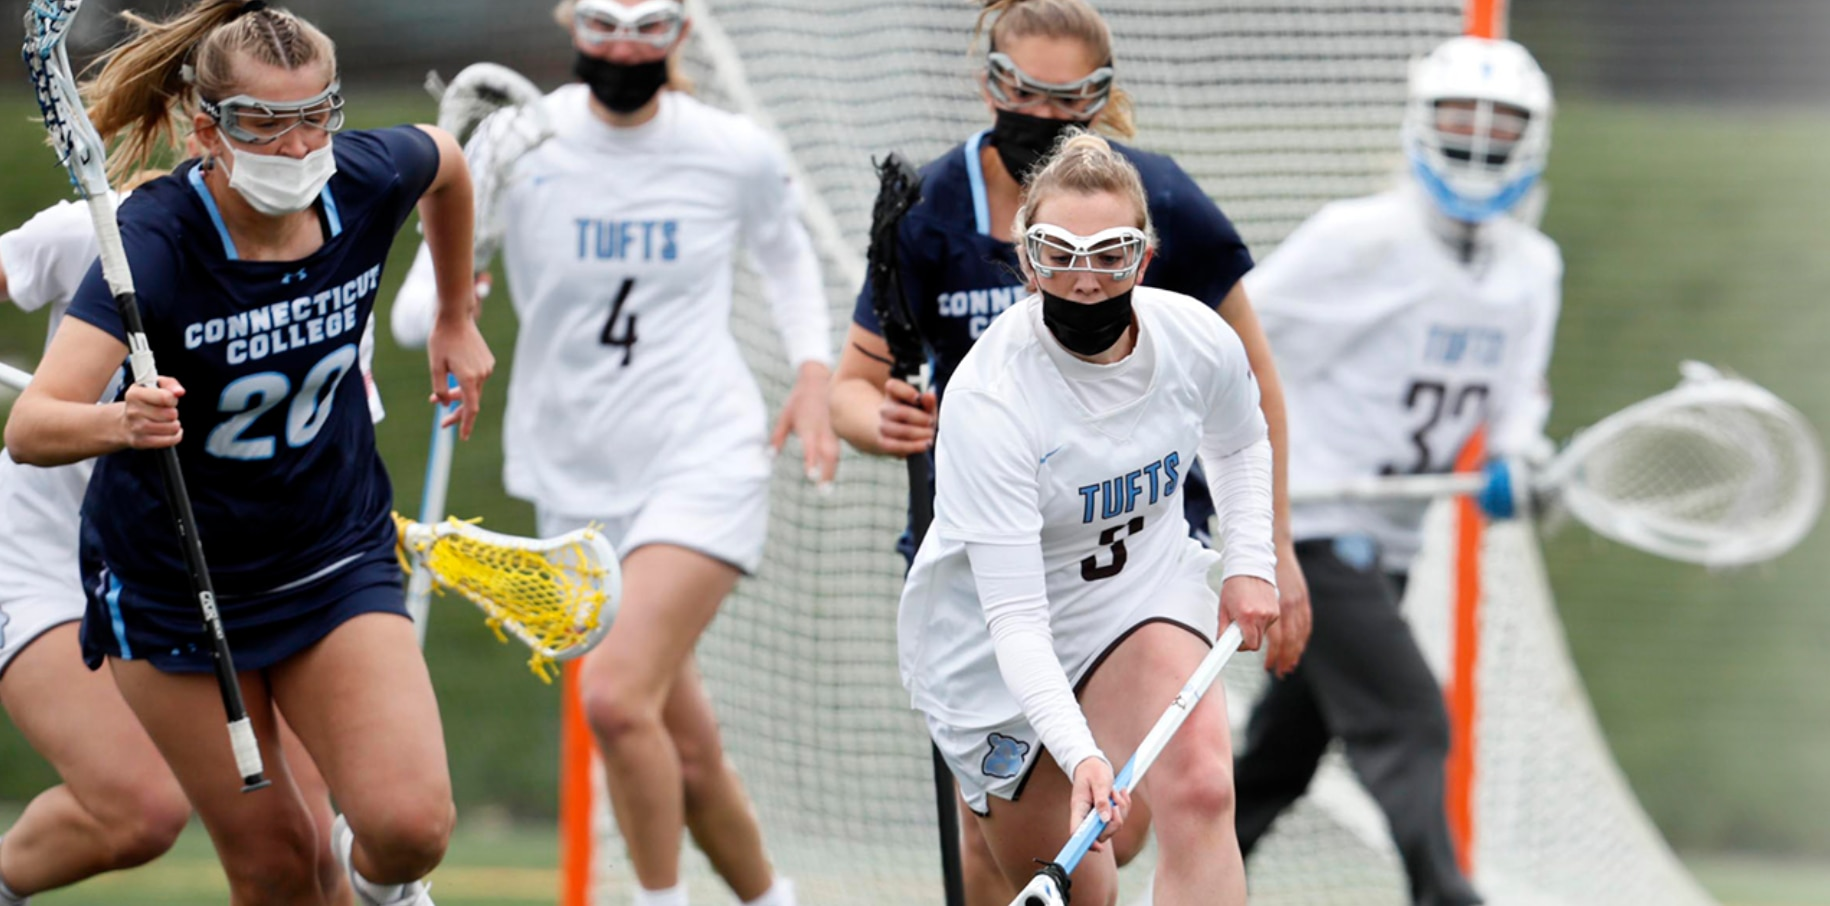 2021 NCAA Division III Women's Lacrosse Championship selections announced |  NCAA.com